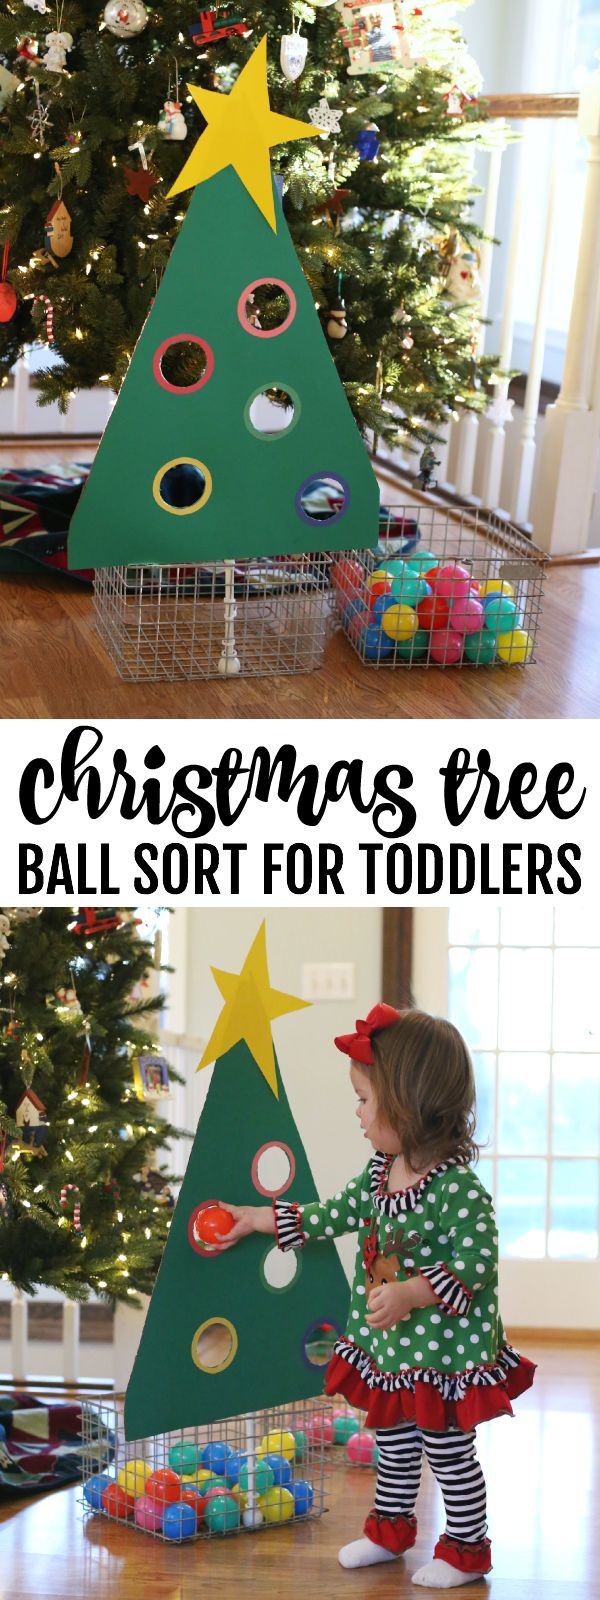 Christmas Tree Ball Sort for Toddlers 2809